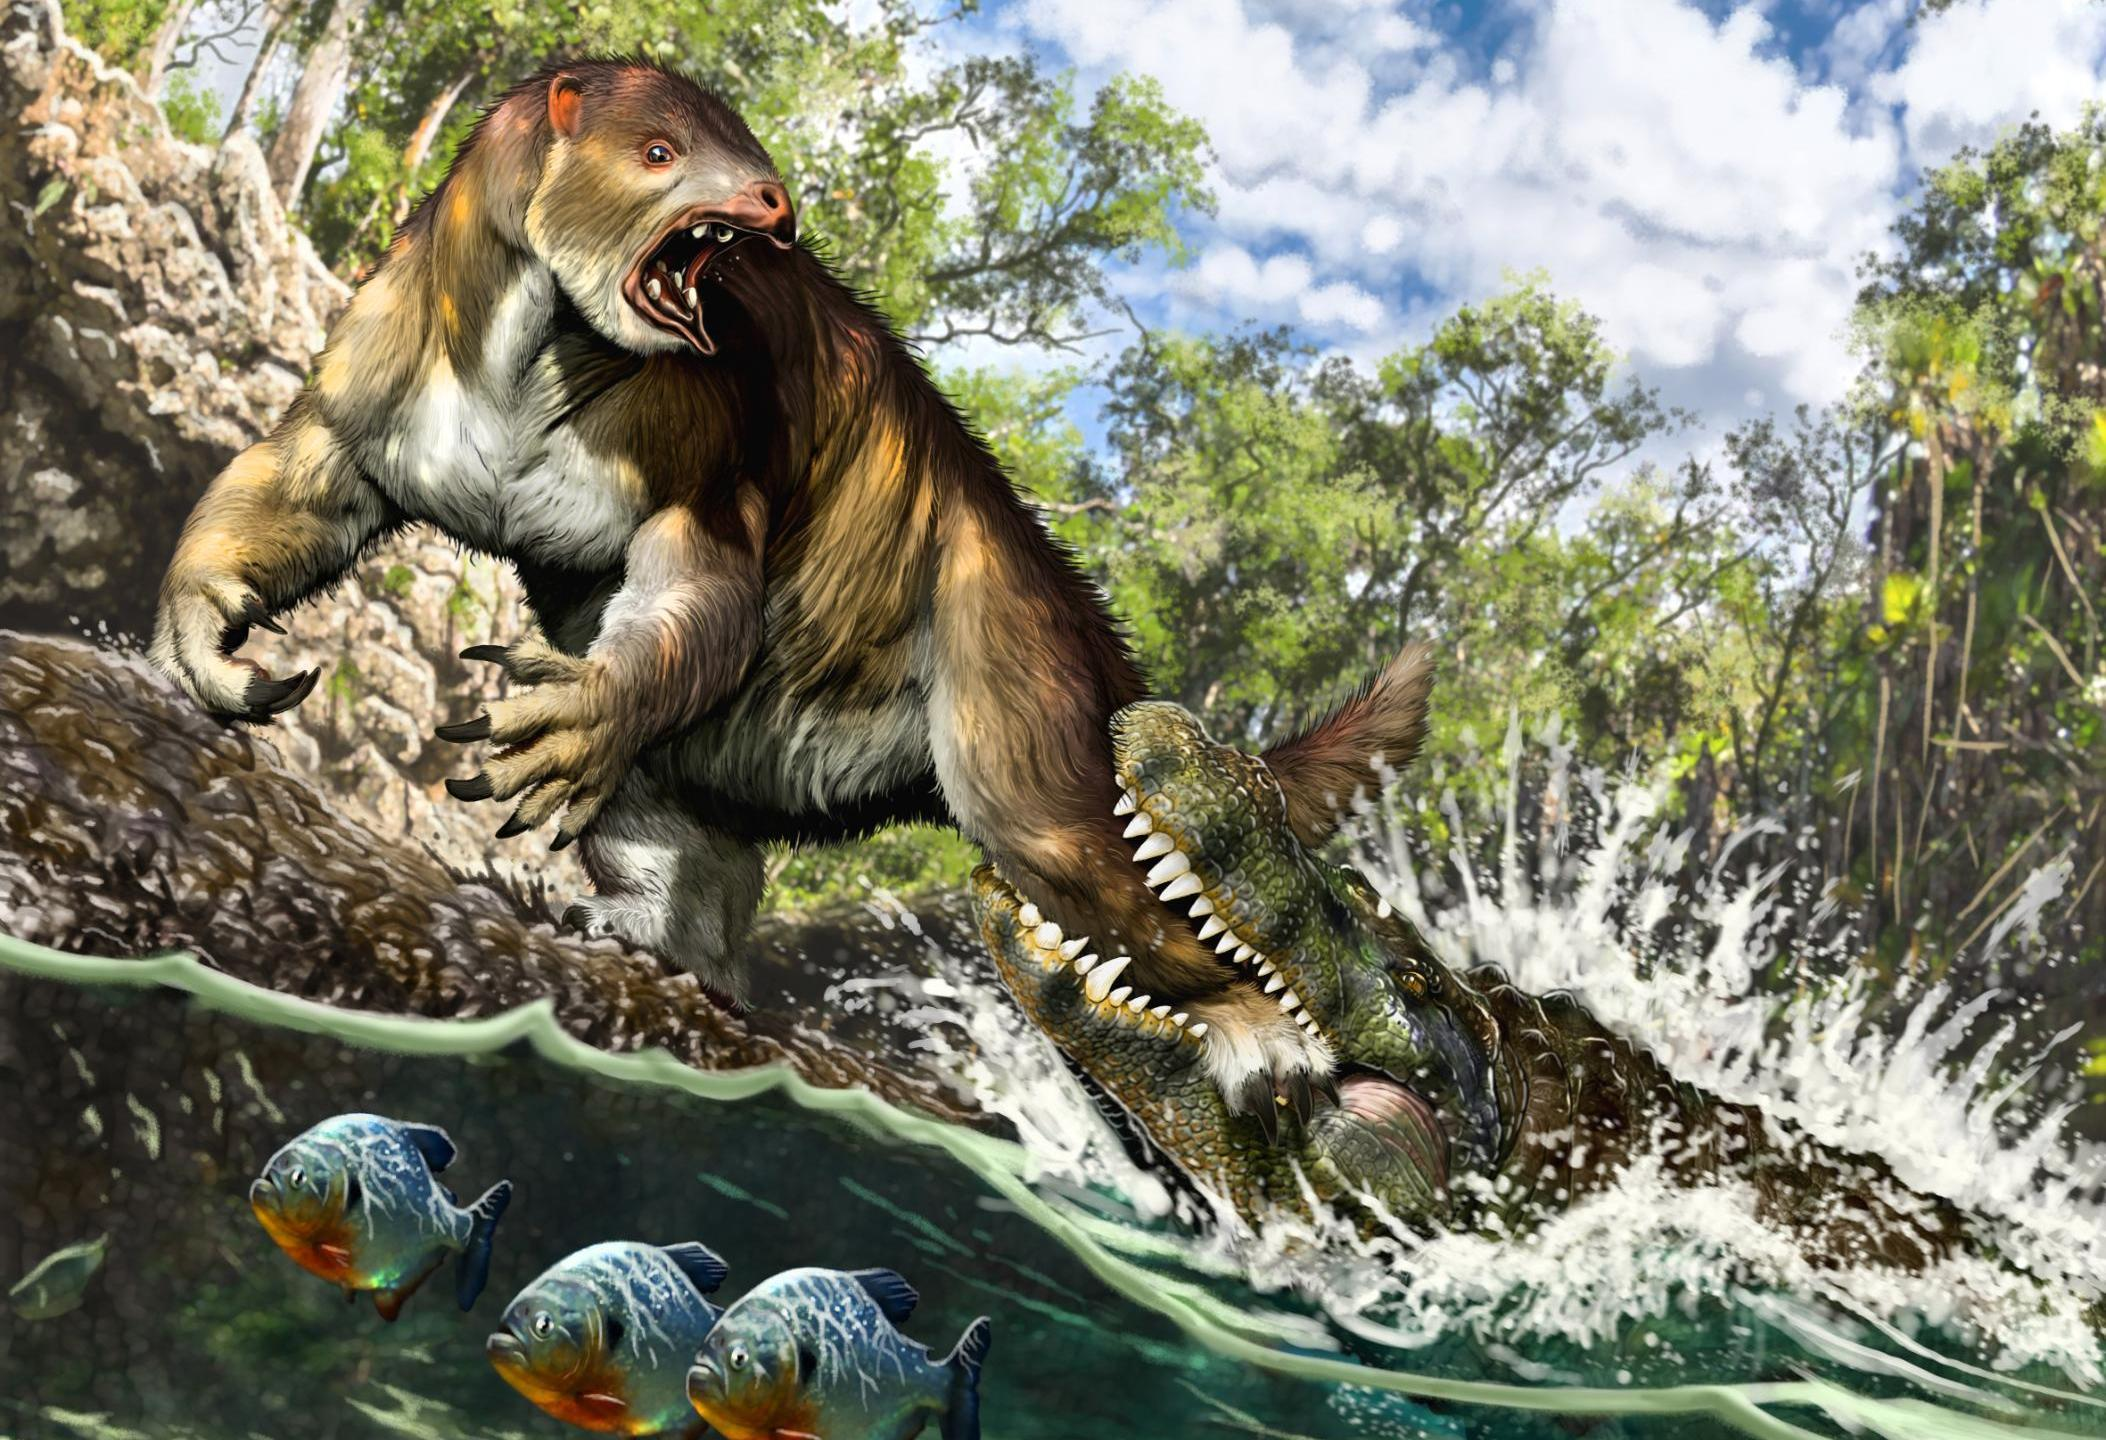 This artist's illustration shows a young Purussaurus attacking a ground sloth in Amazonia 13 million years ago. Credit: Jorge A. González